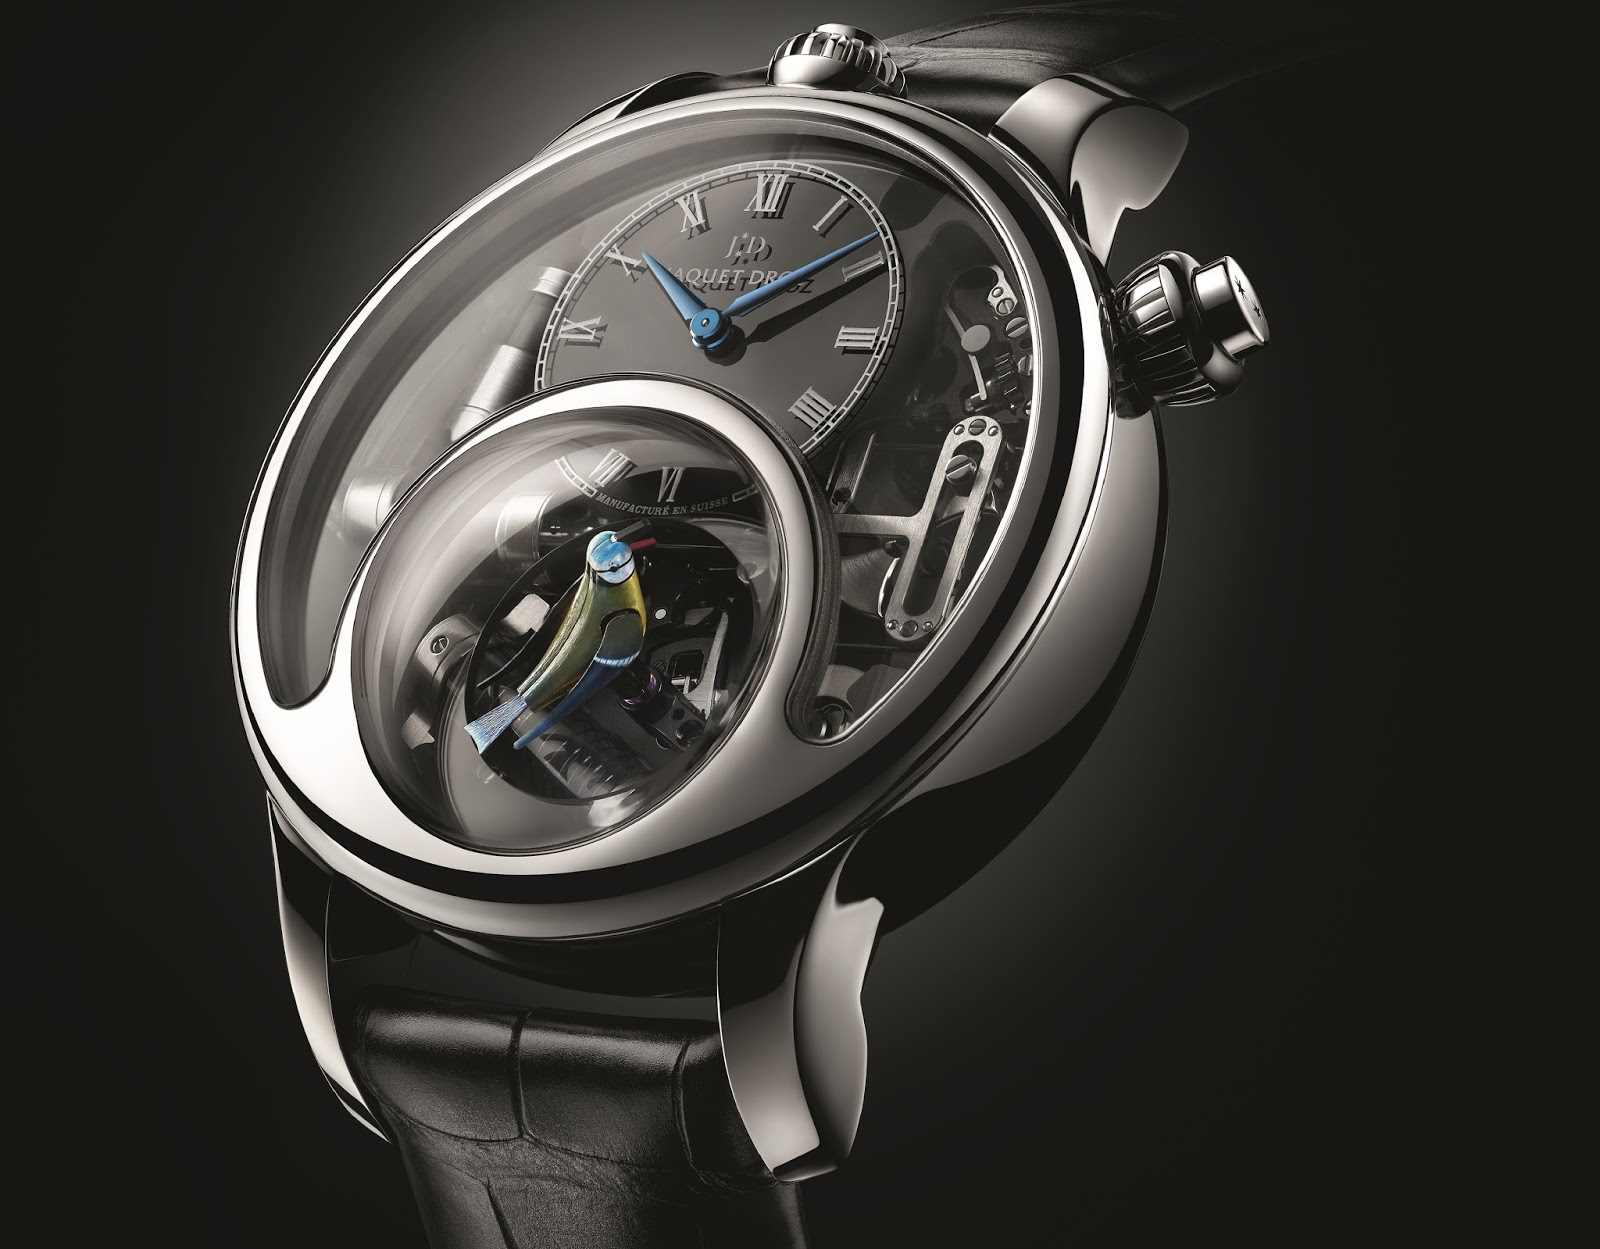 Jacquet Droz - The Charming Bird - Mechanical Exception Watch Prize